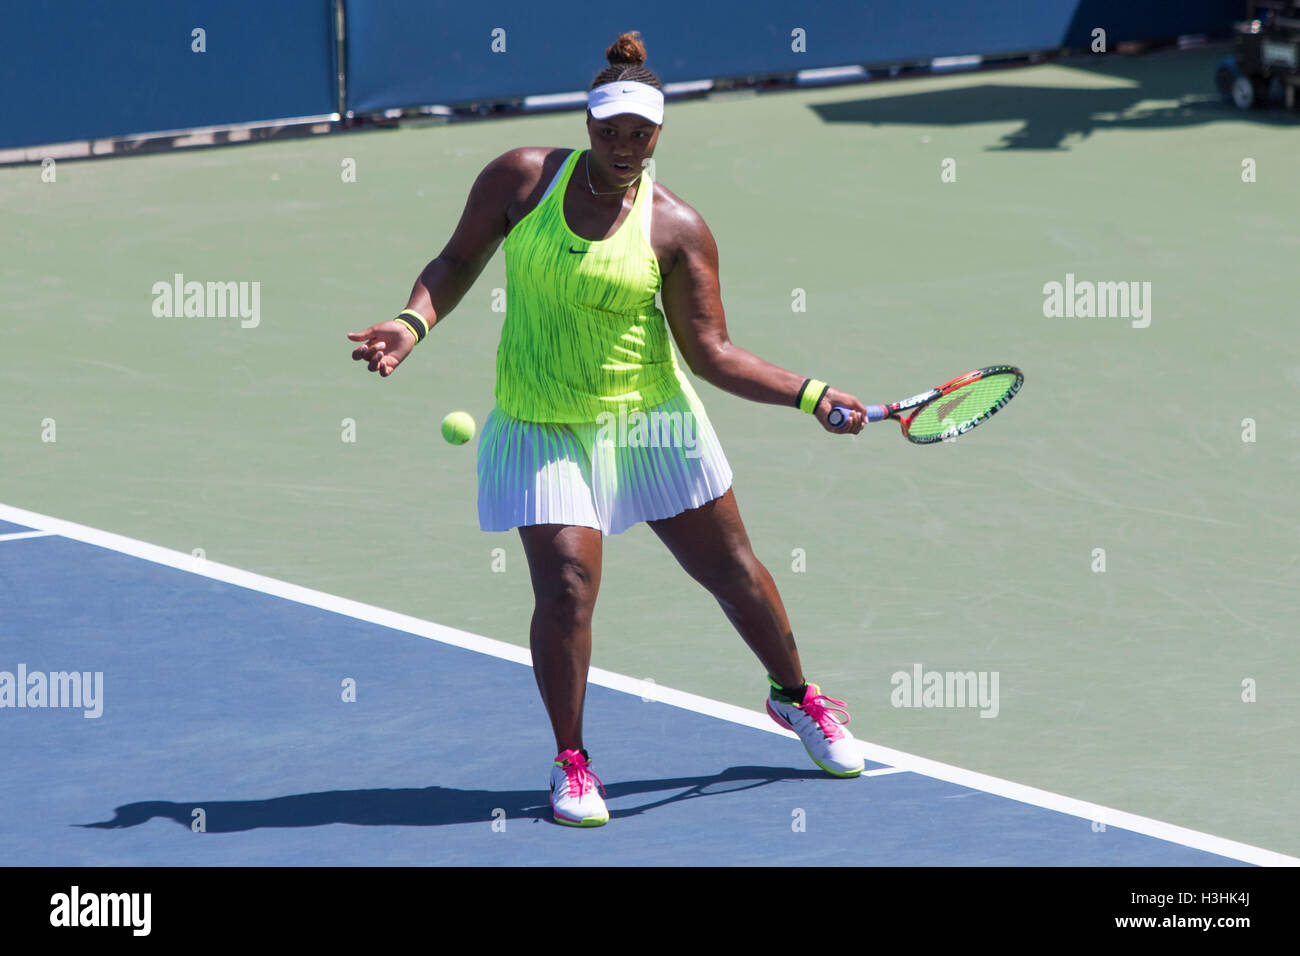 Taylor Townsend (USA) competing in the 2016 US Open - Stock Image